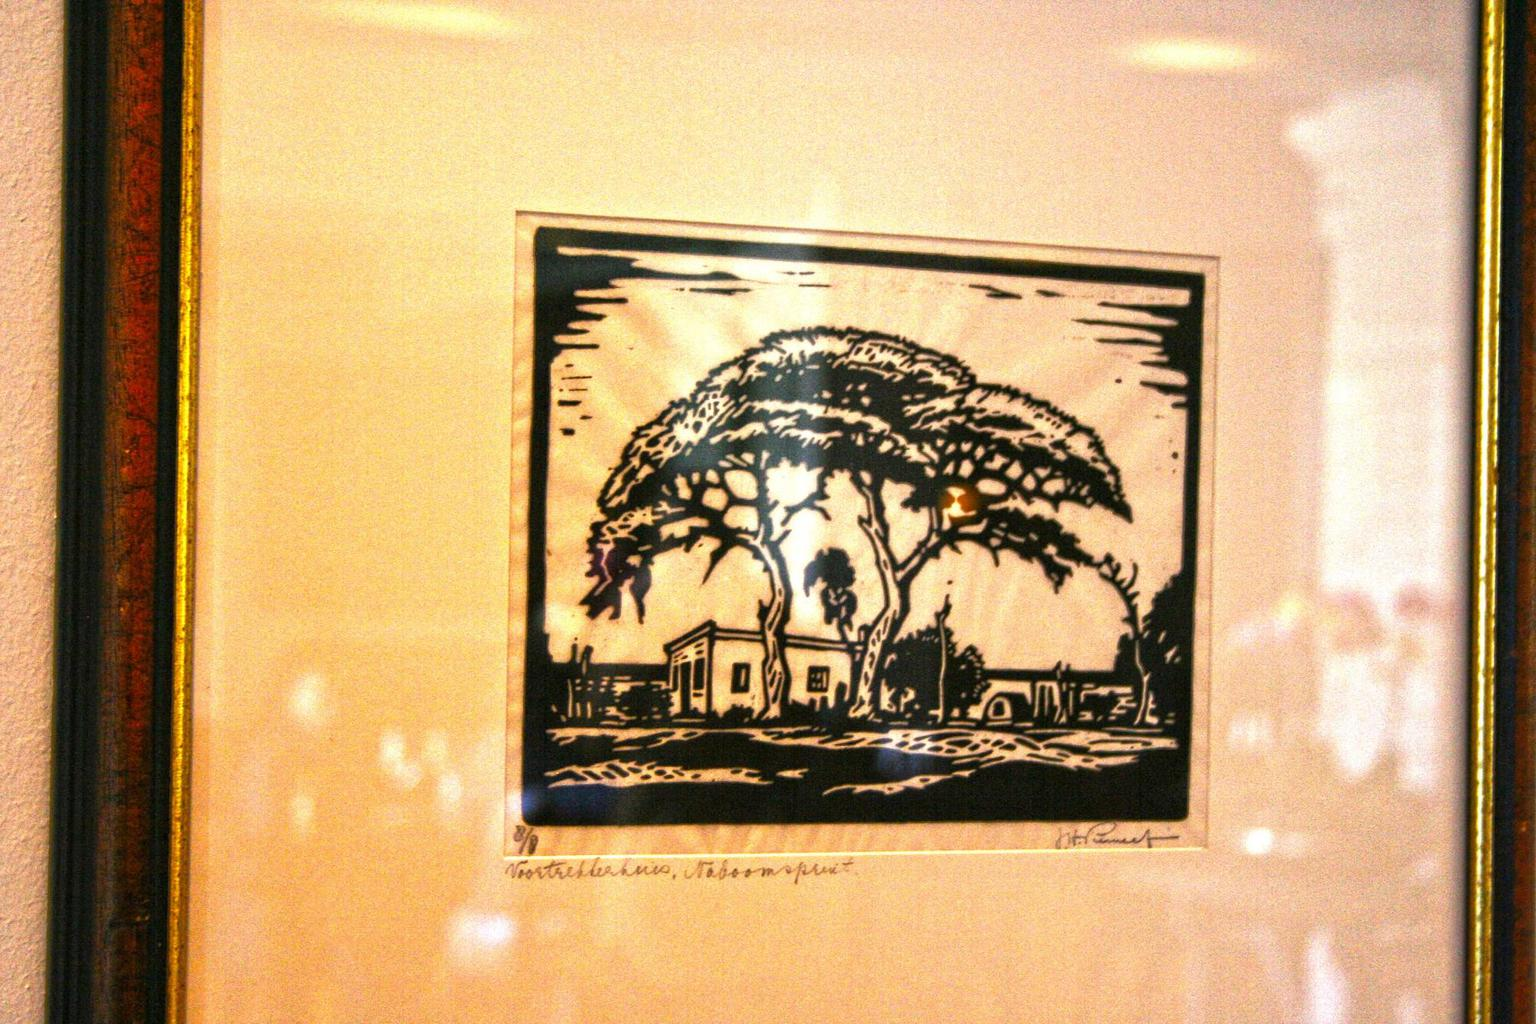 One of Pierneef's linocuts